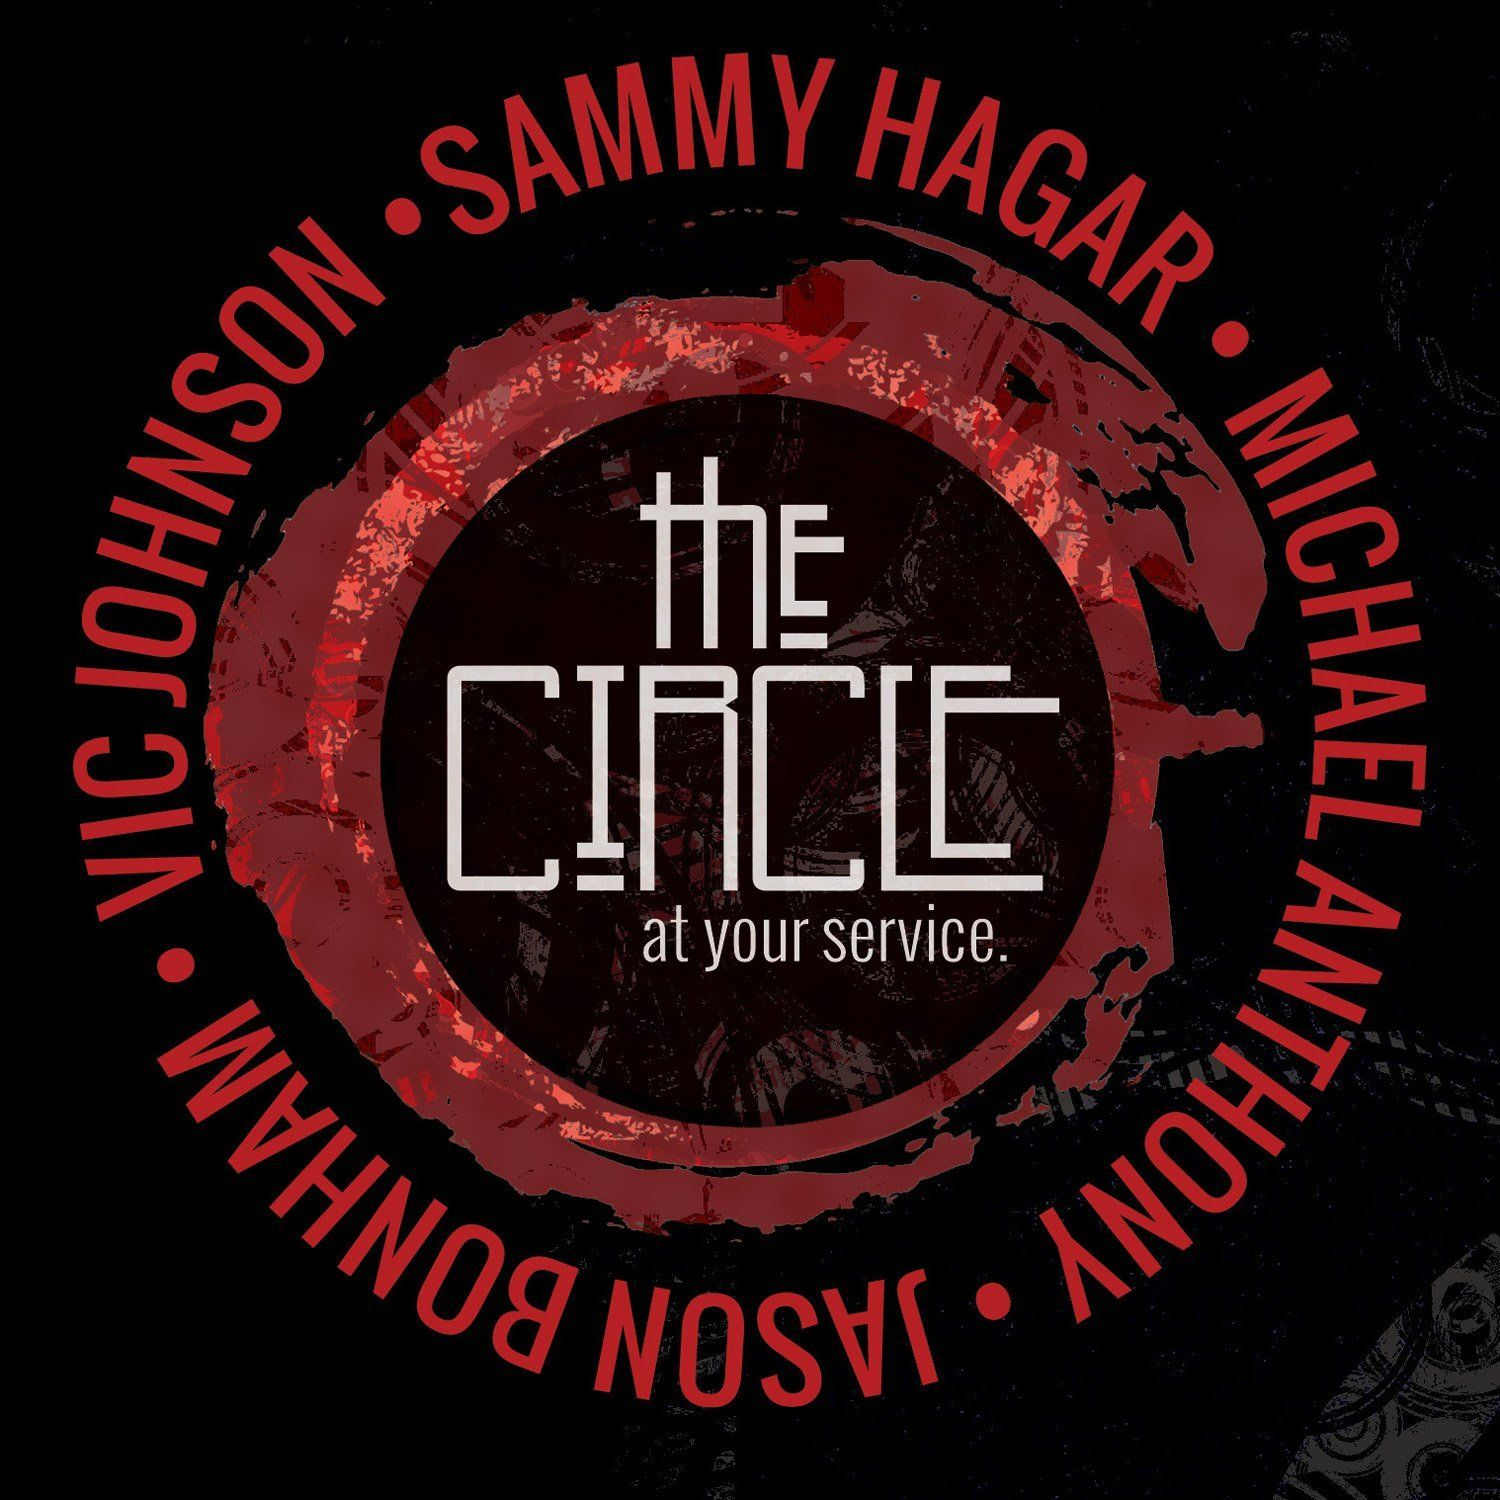 Sammy Hagar And The Circle At Your Service Sammy Hagar Classic Rock Albums Sammy Hagar The Circle